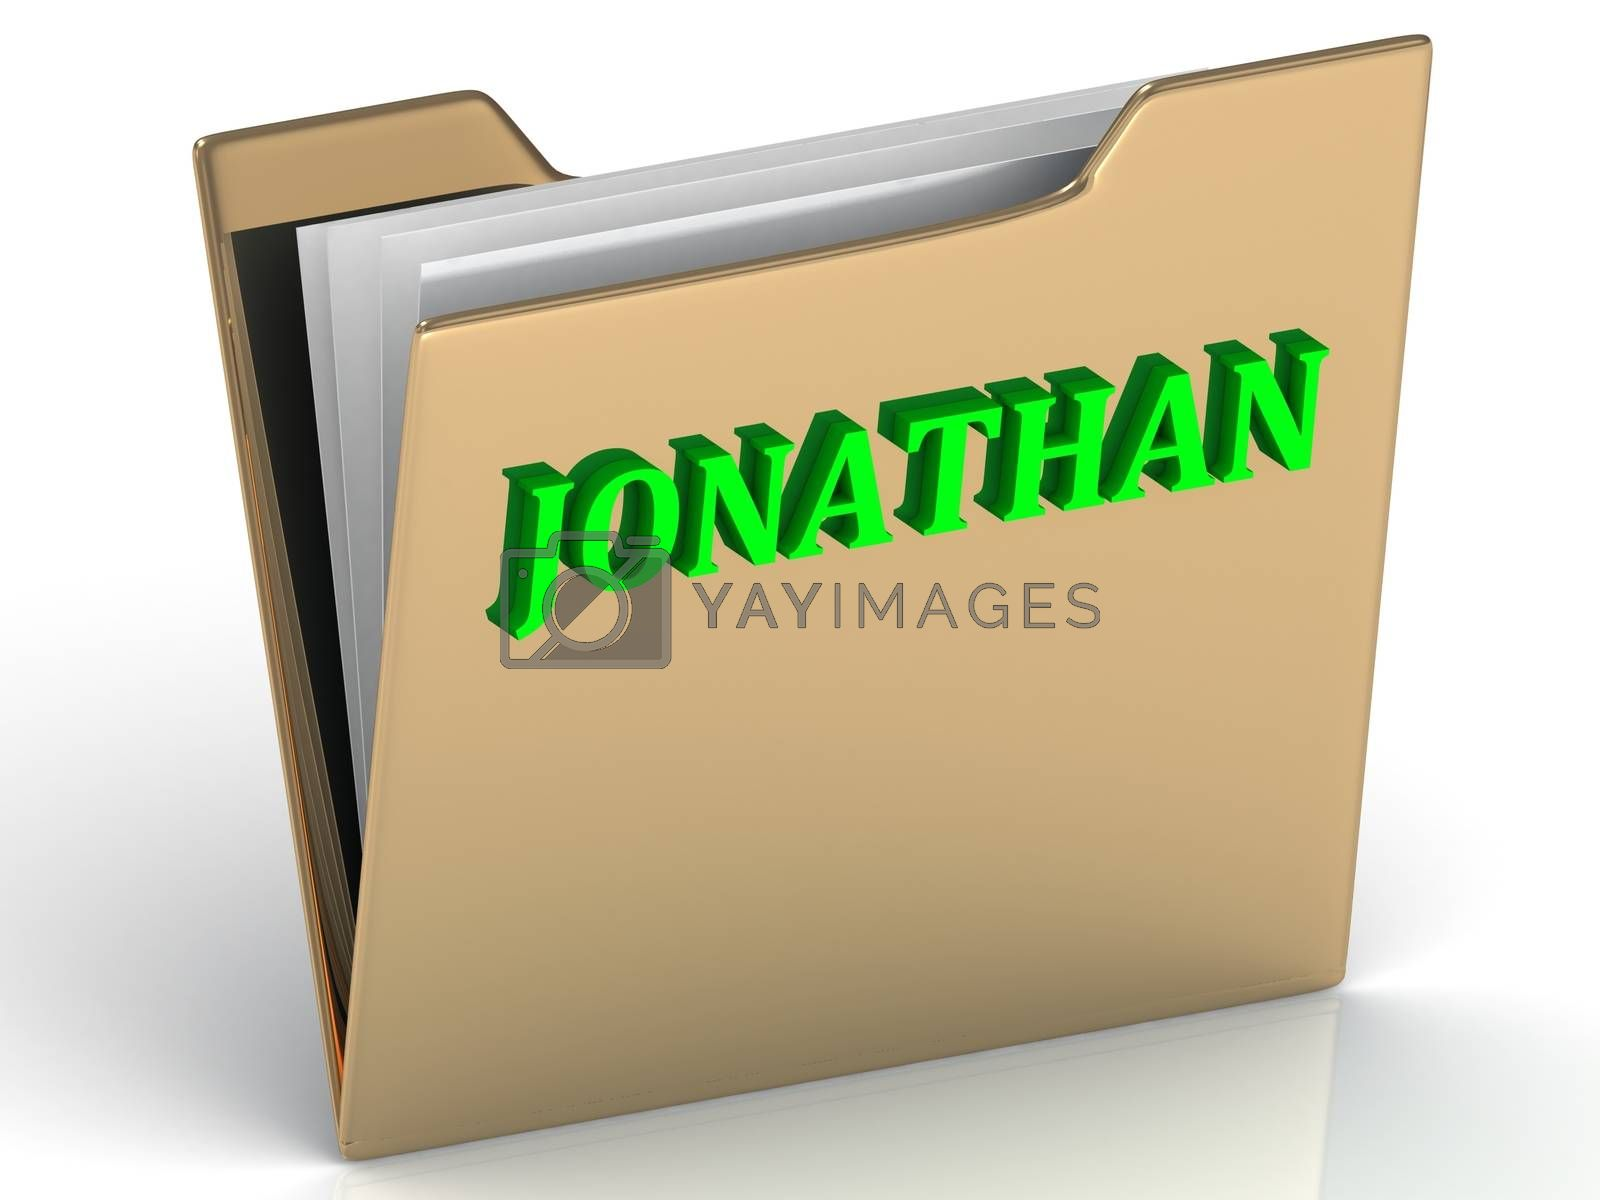 JONATHAN- bright green letters on gold paperwork folder on a white background